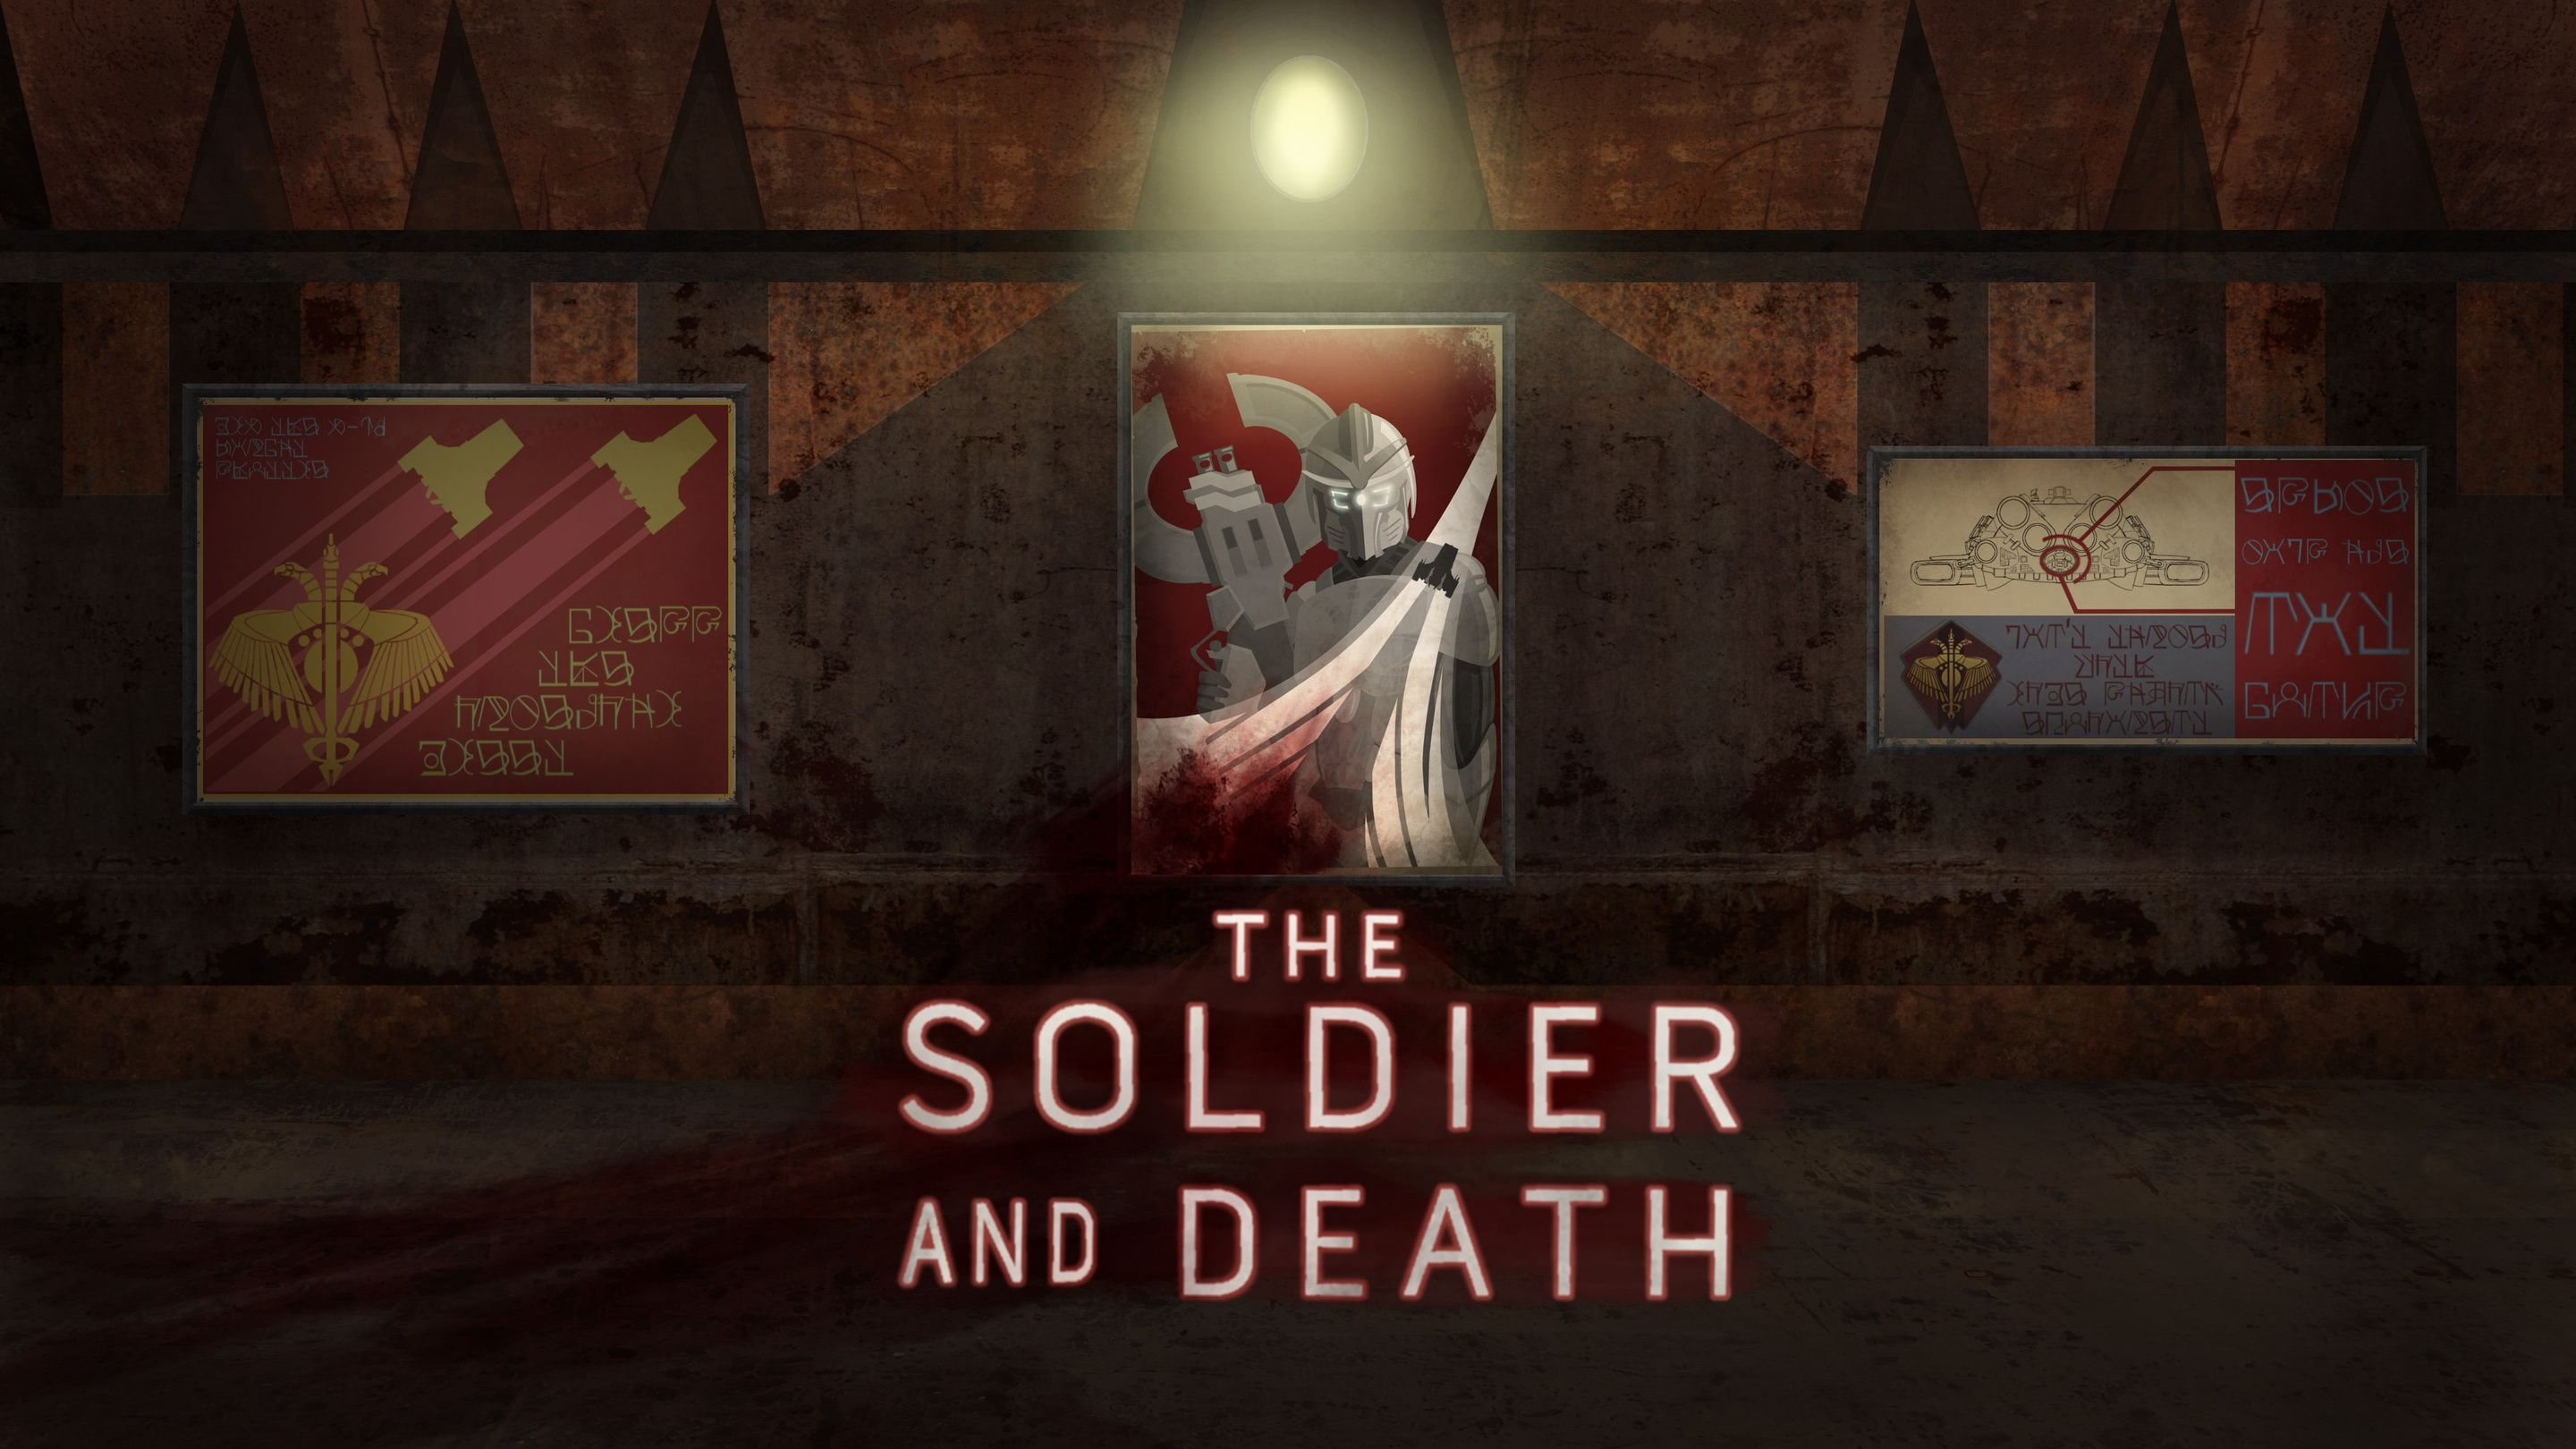 Soldier and Death: Introductory Animatic